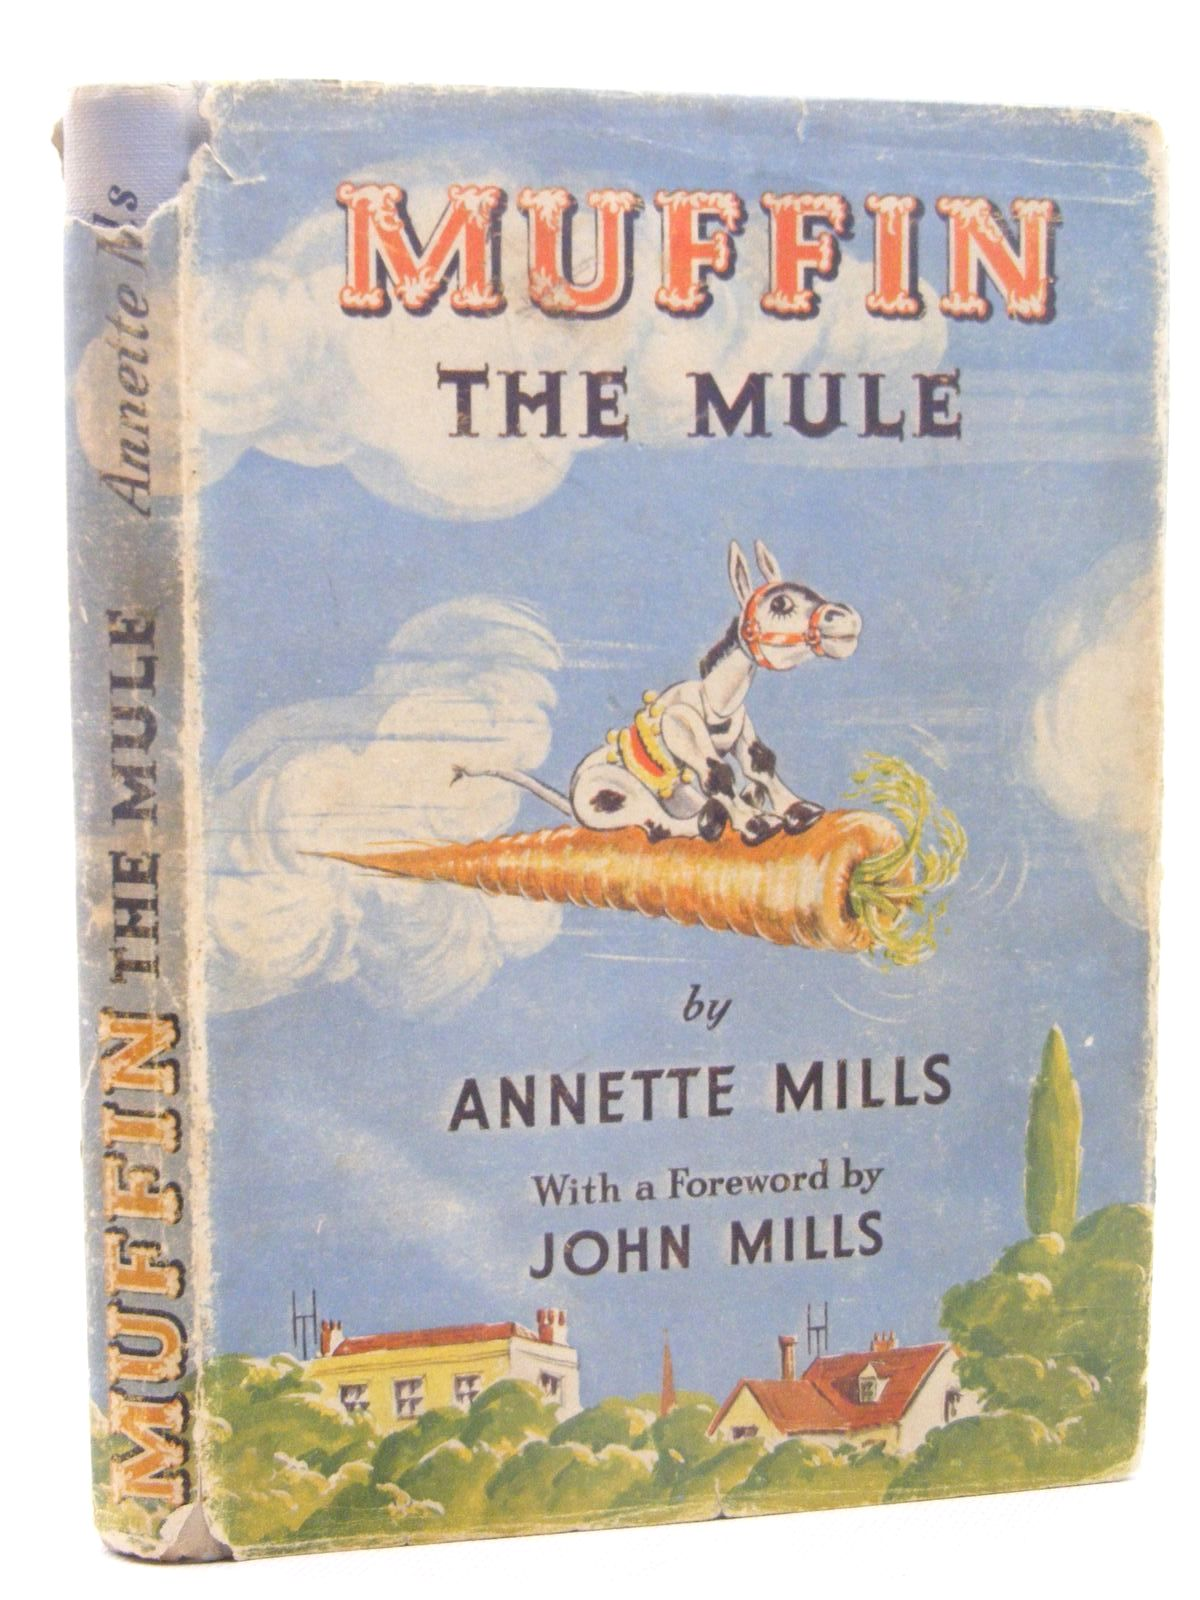 Photo of MUFFIN THE MULE written by Mills, Annette illustrated by Blake, Molly published by University of London Press (STOCK CODE: 1317301)  for sale by Stella & Rose's Books